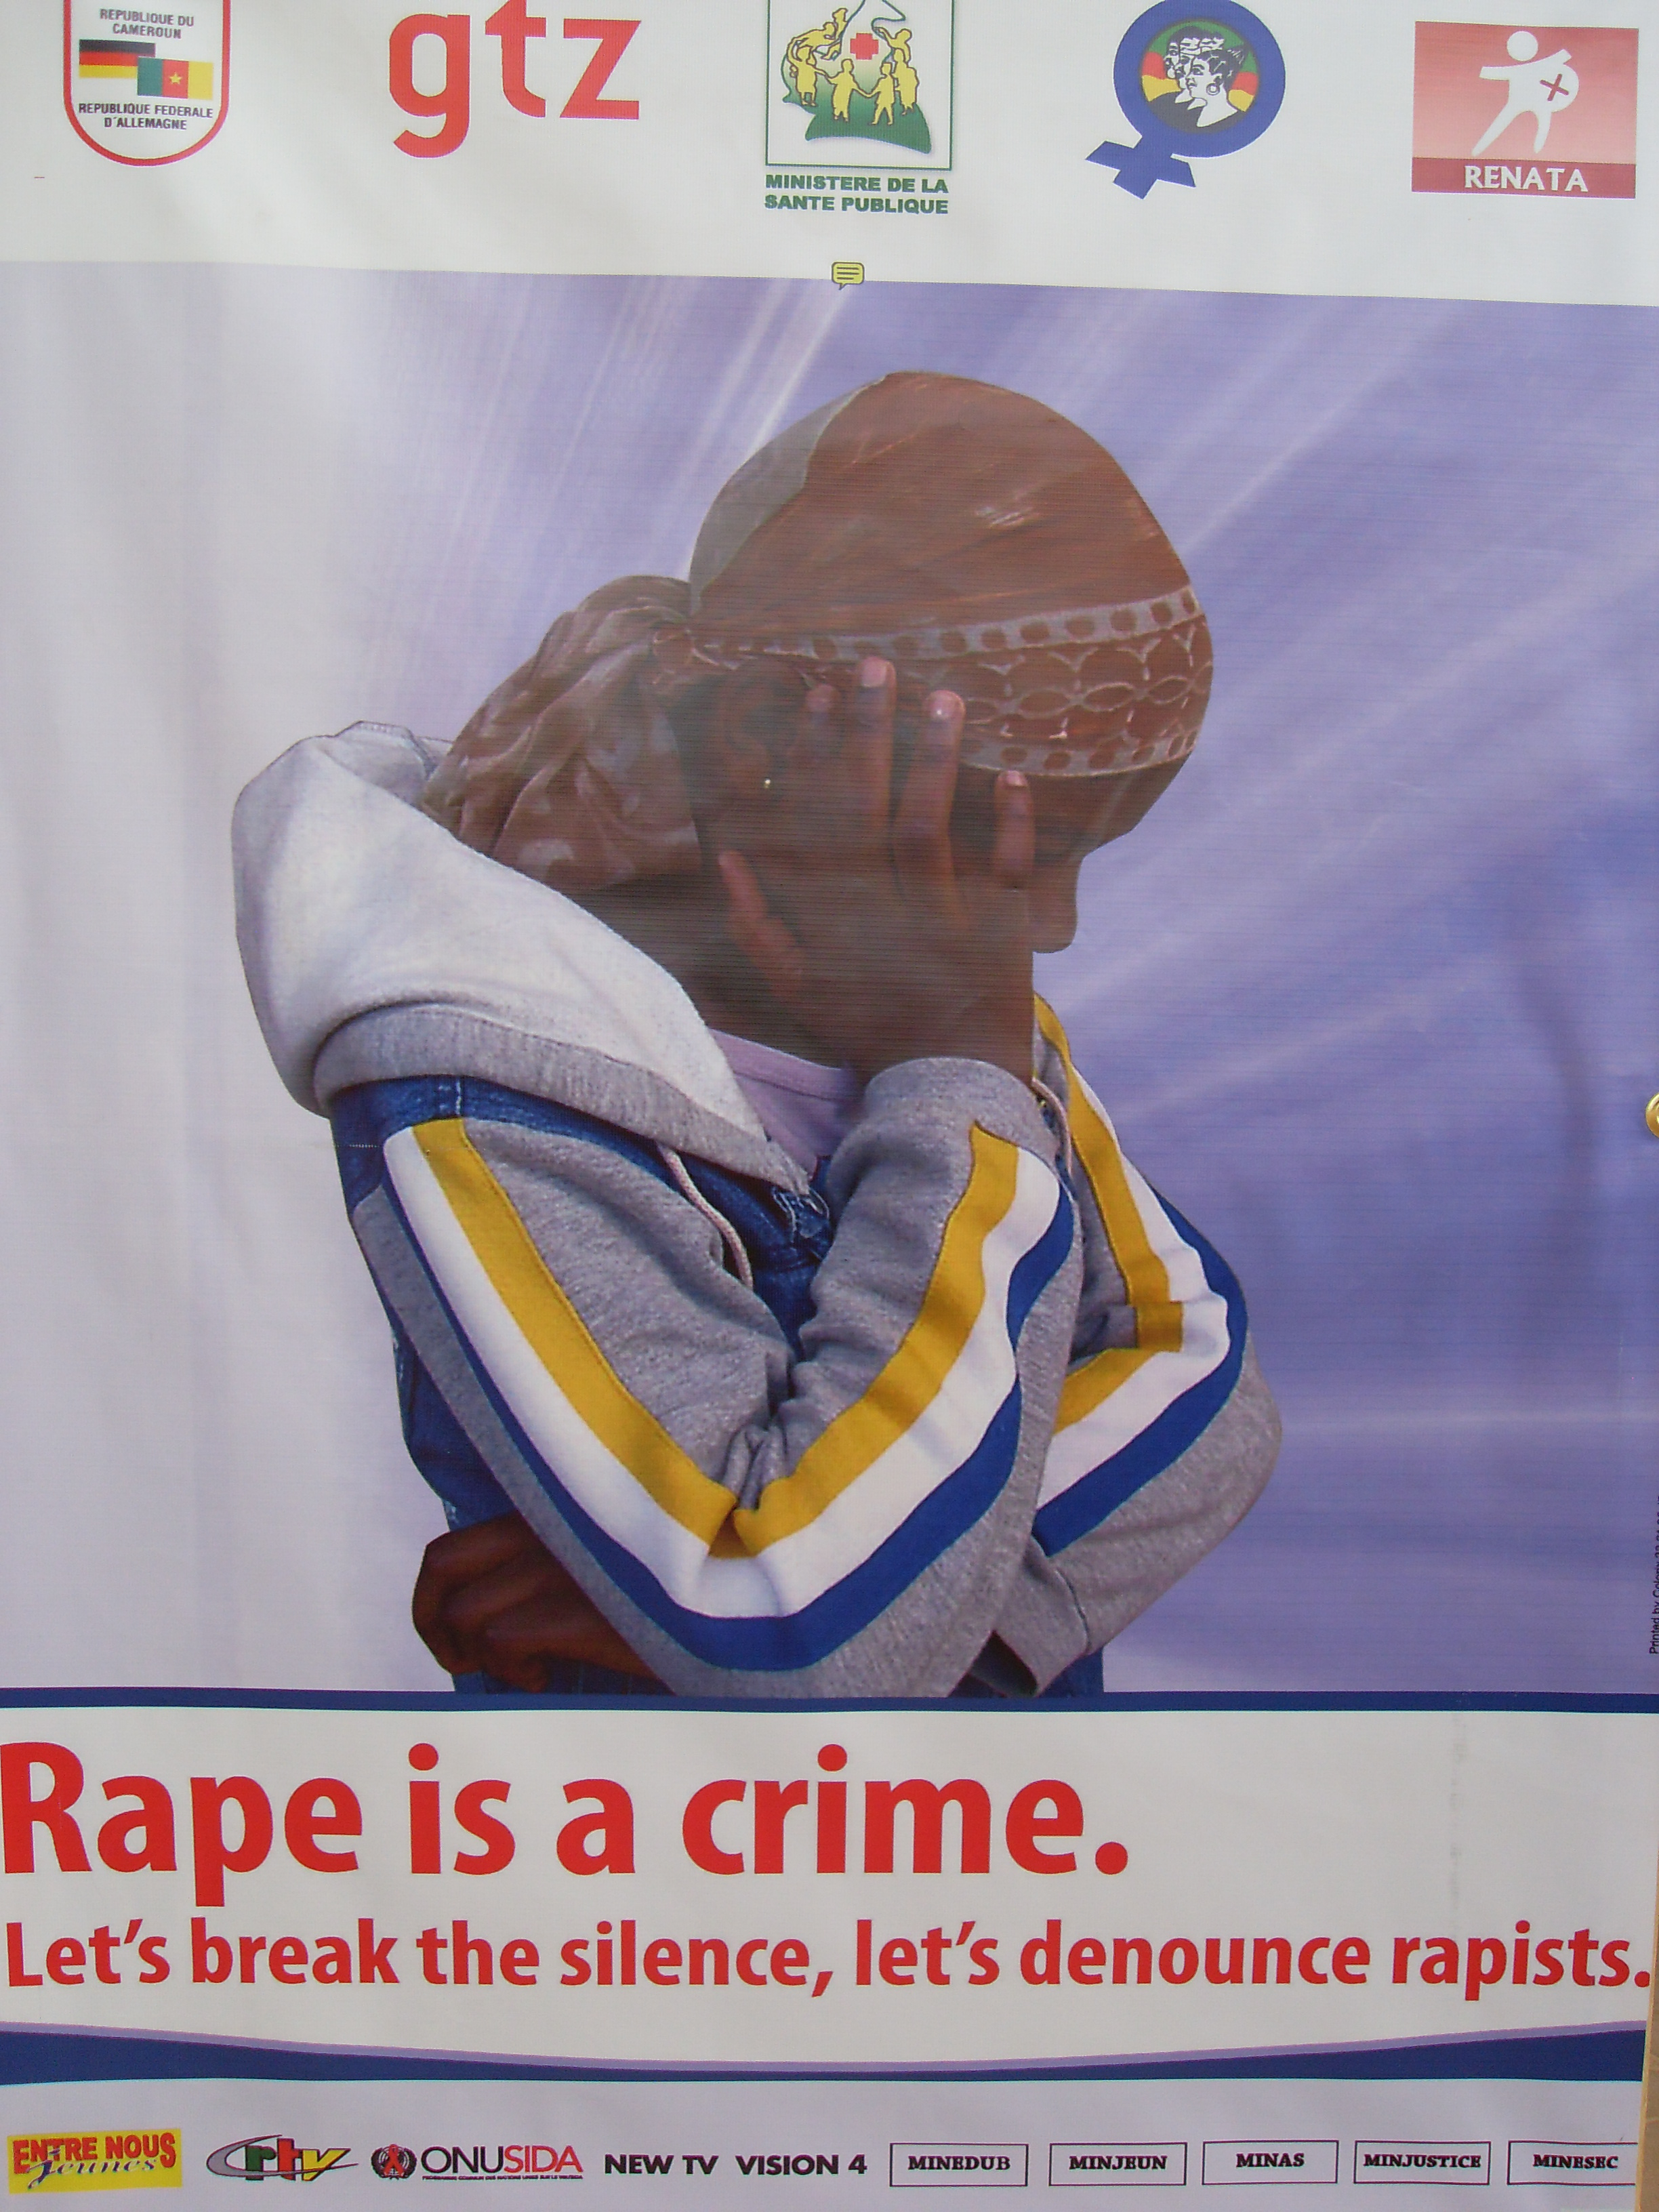 A poster being used as part of a campaign to denounce rape in Cameroon. May 2009